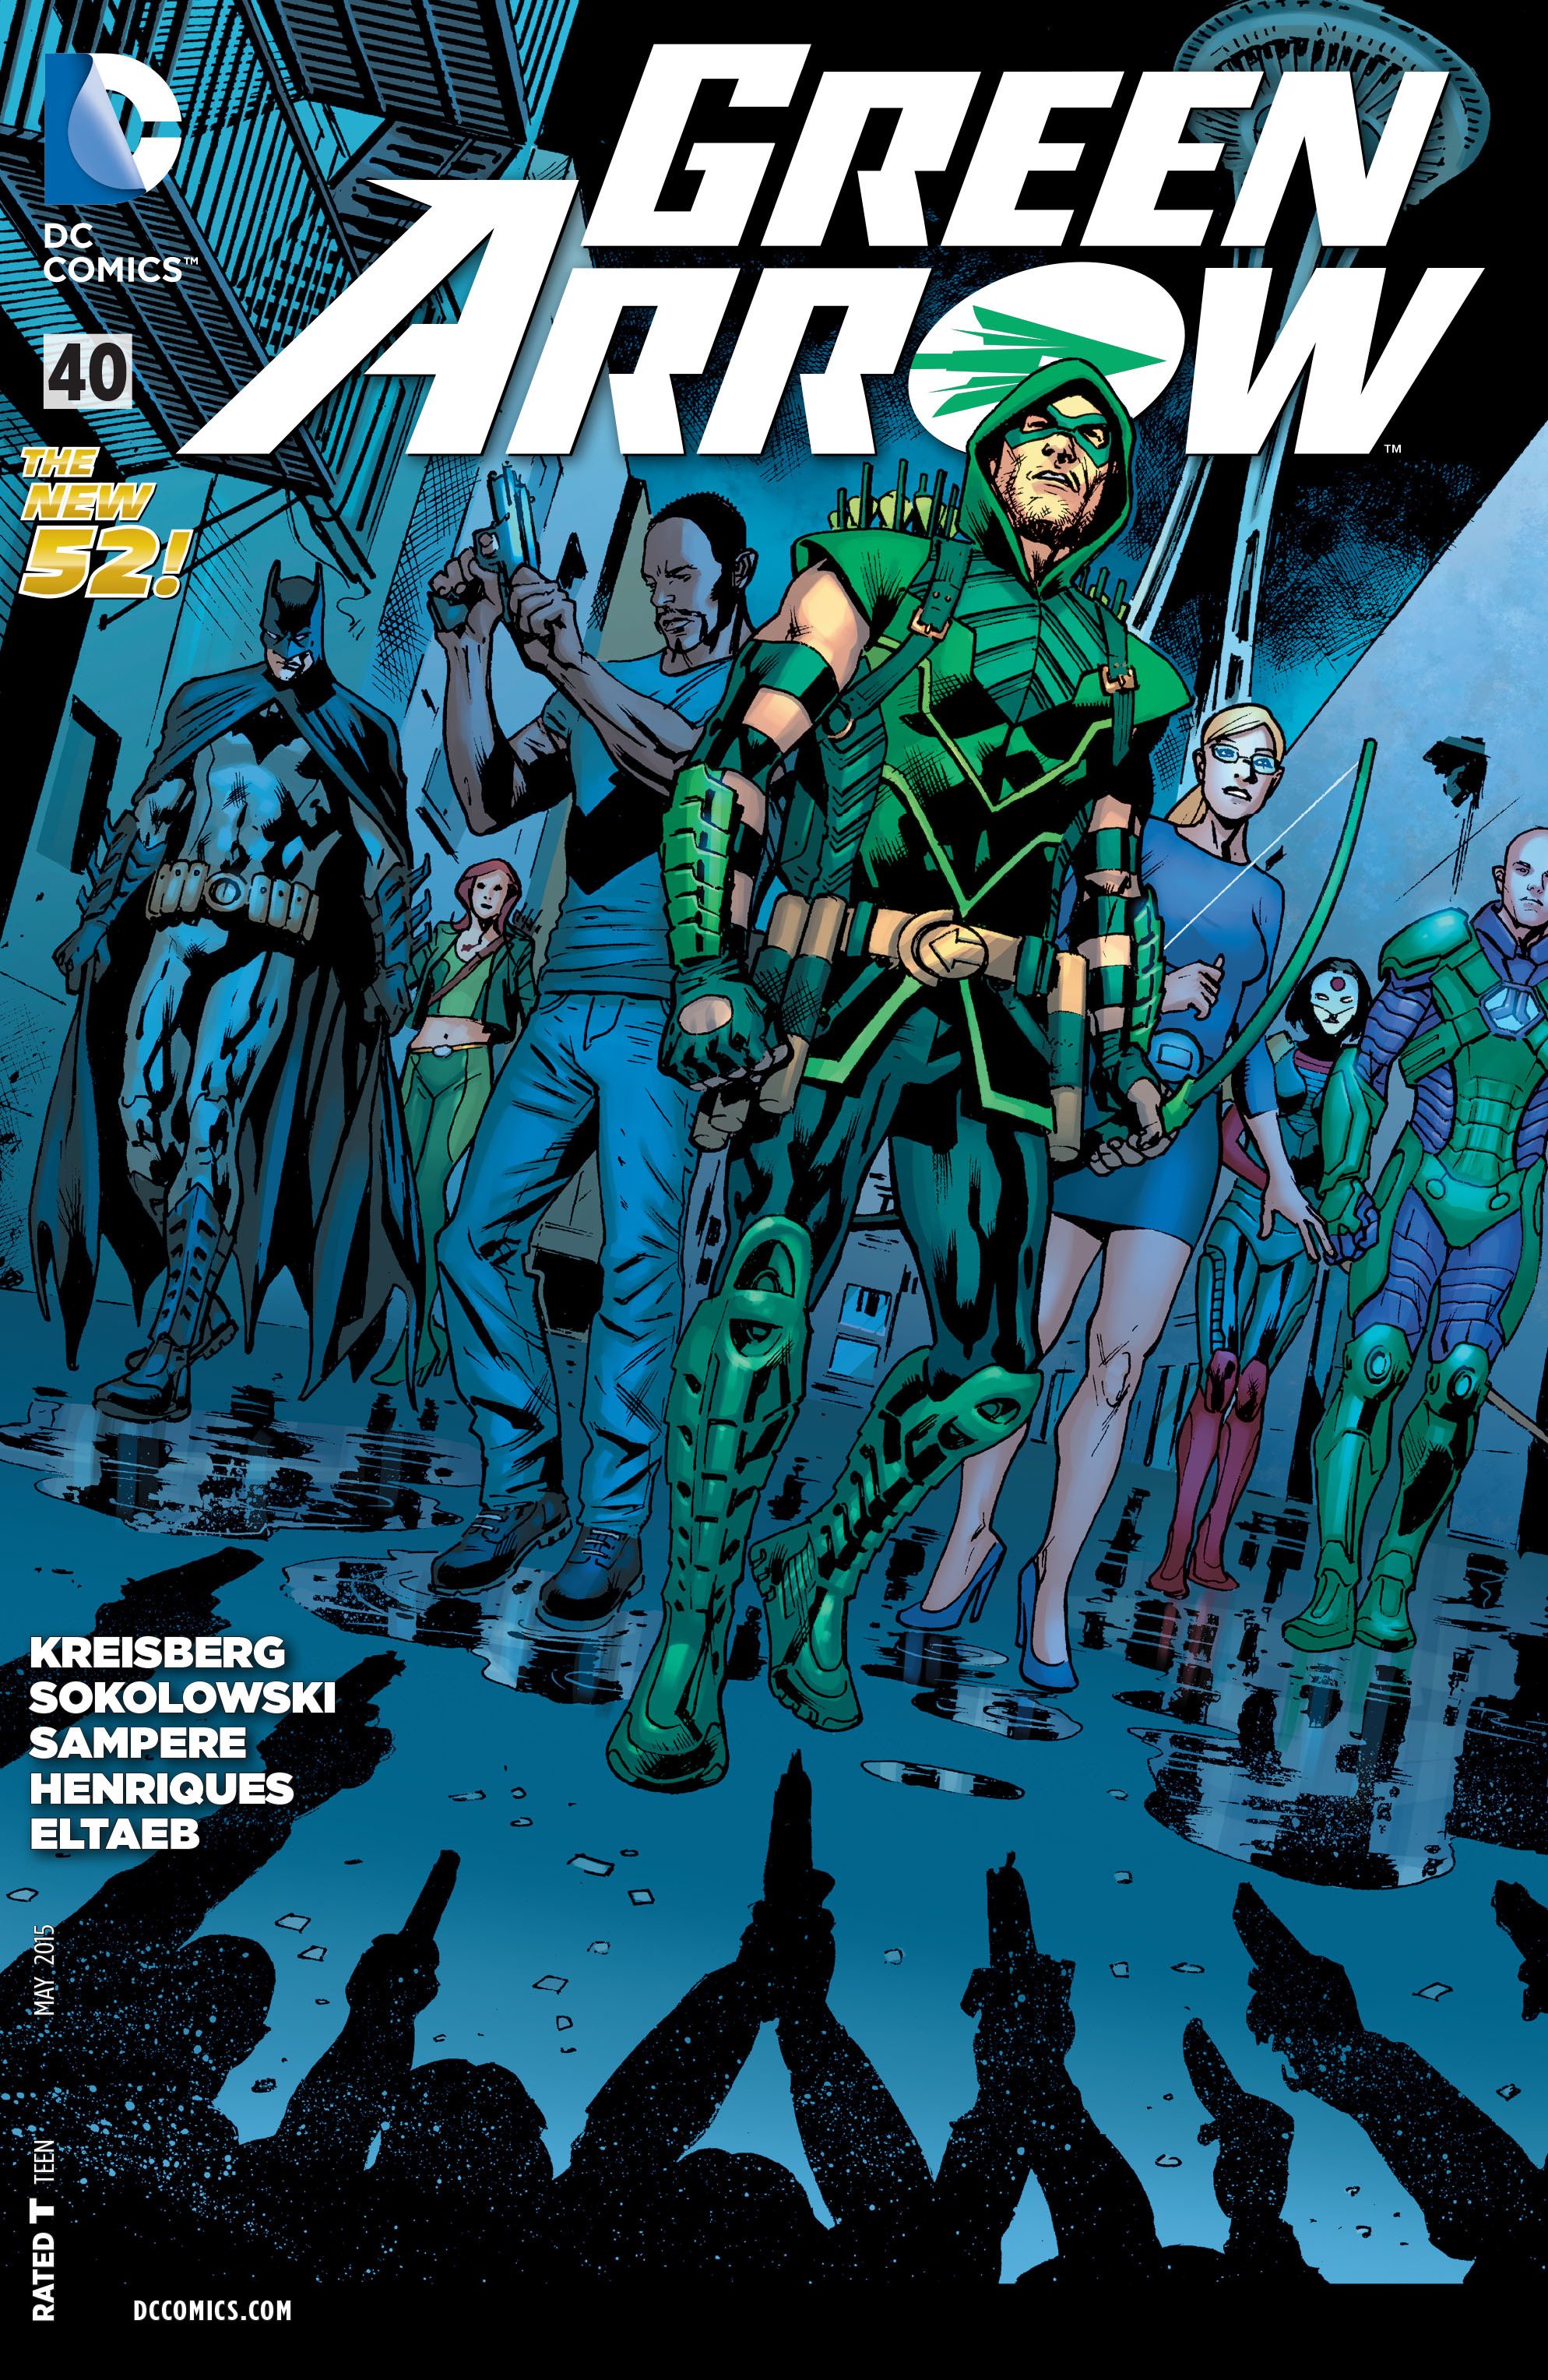 Cover art for 'Green Arrow' #40 by Bryan Hitch & Alex Sinclair